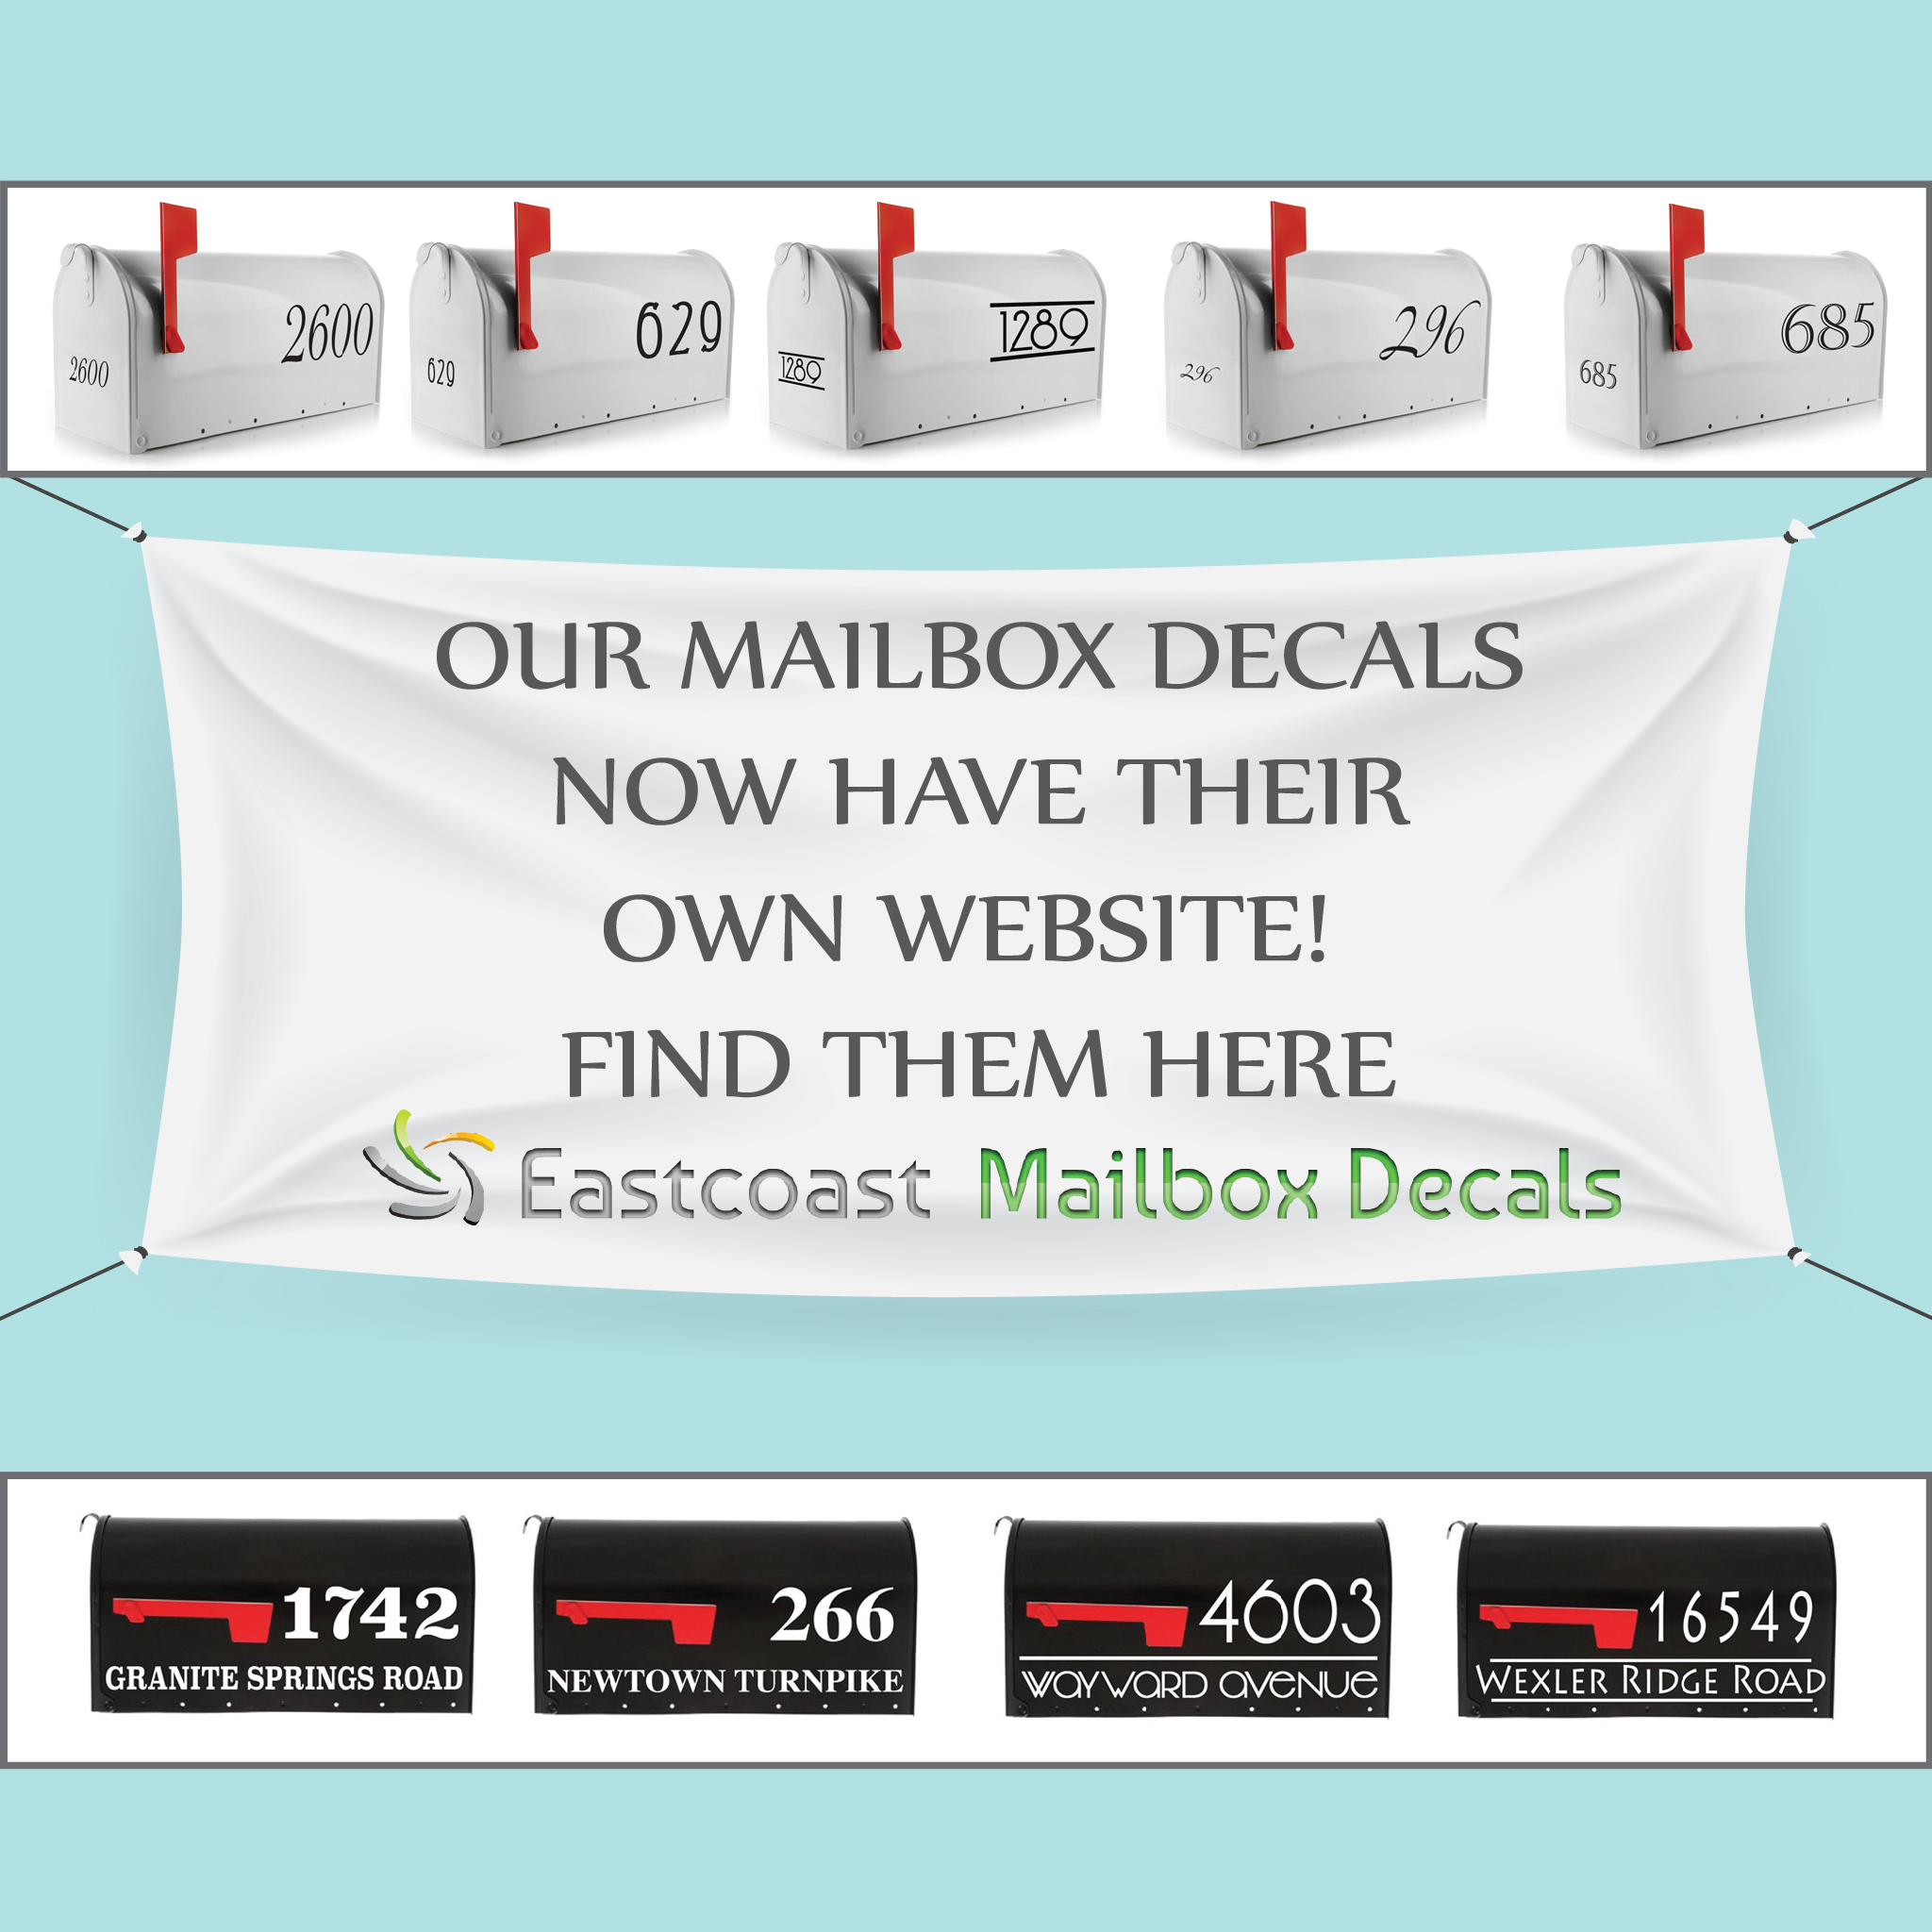 Eastcoast Mailbox Decals